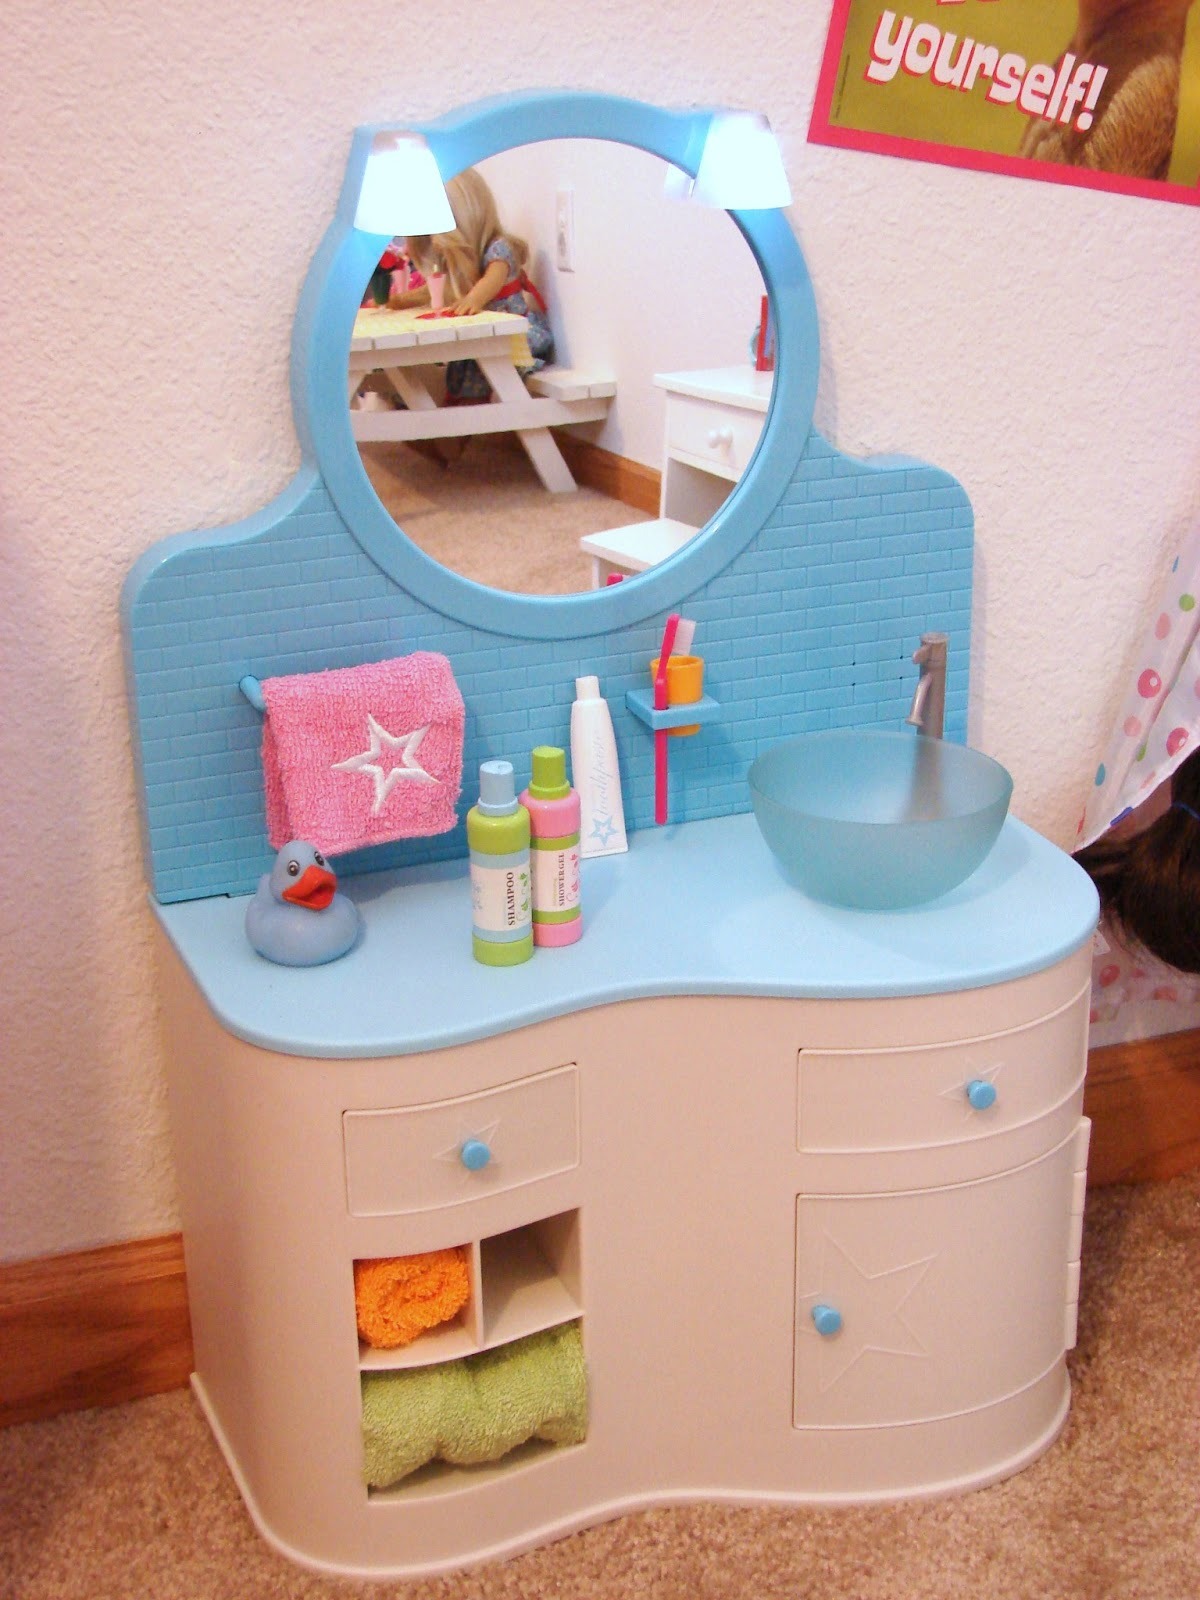 American Girl Doll Play: Our Doll Play Area